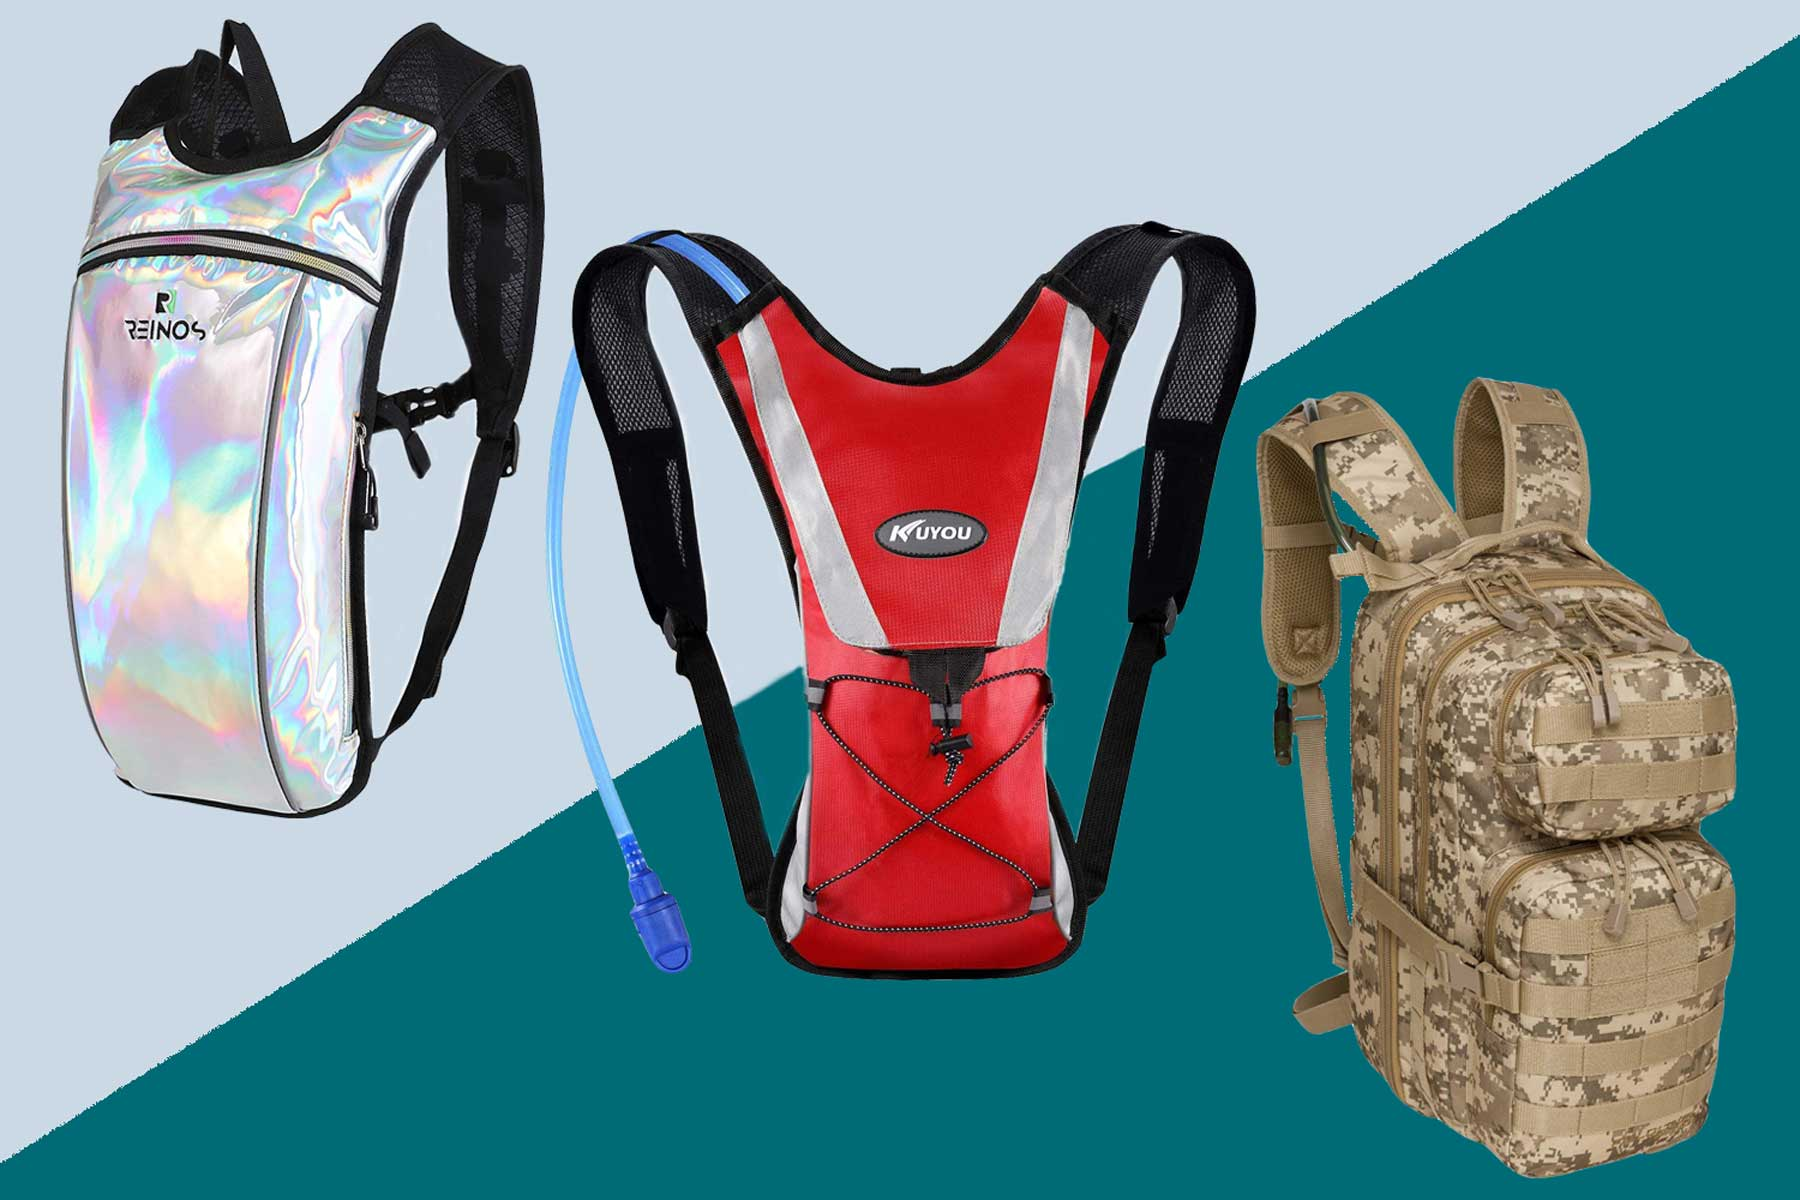 Hydration backpacks in red, camo, and iridescent